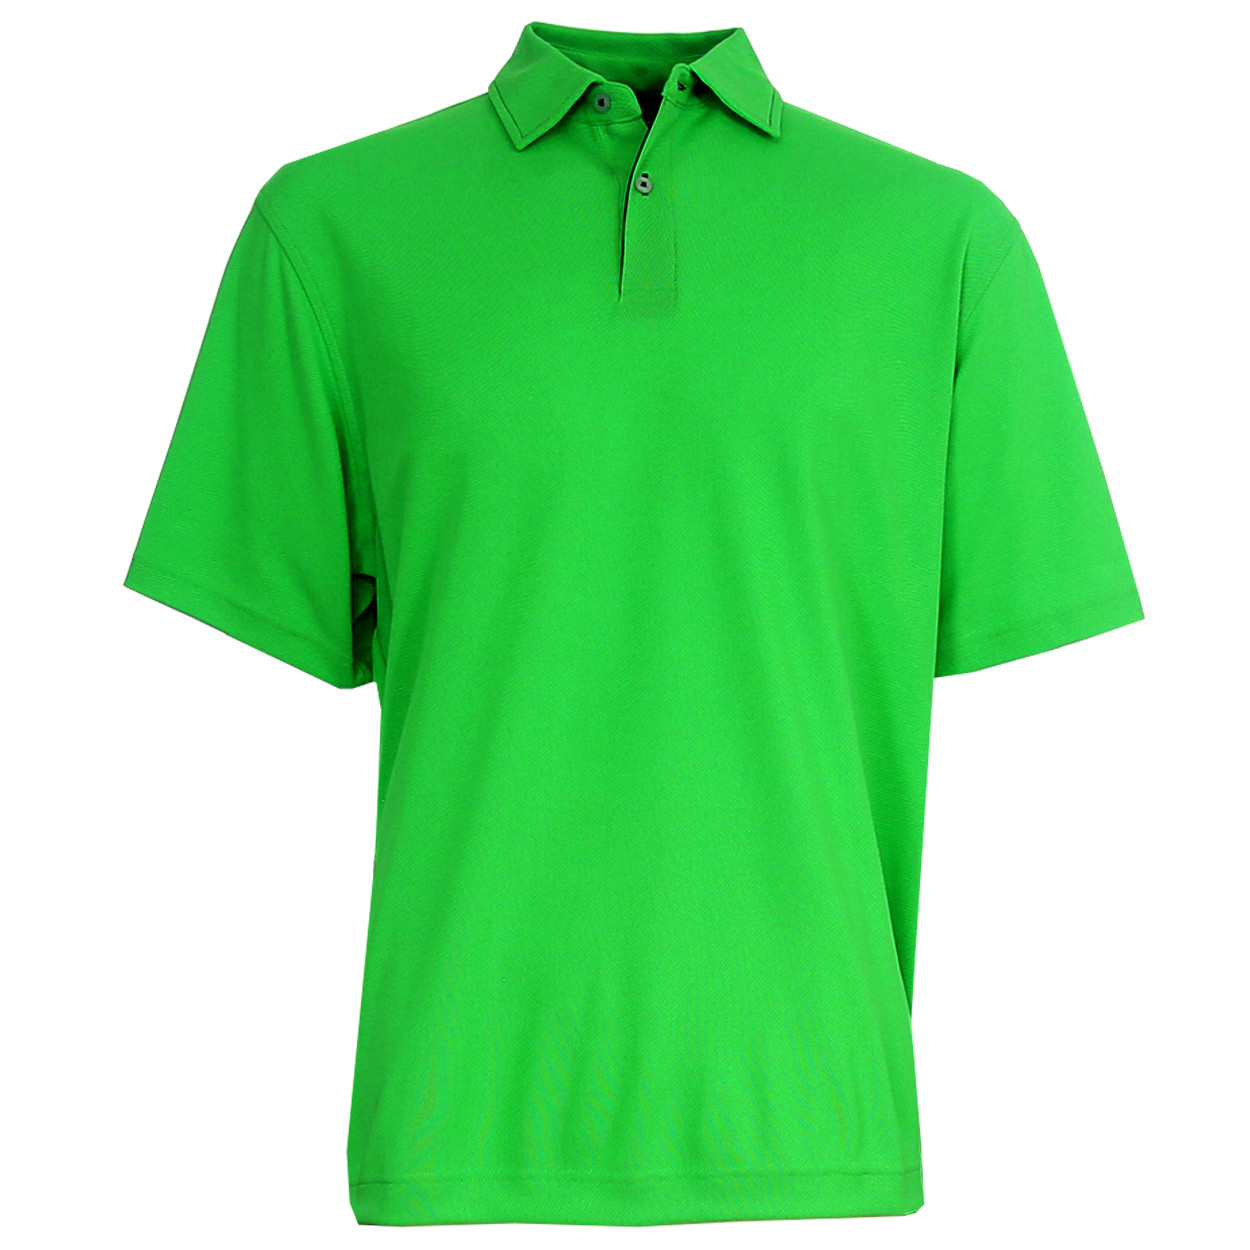 Carnoustie performance solid pique polo golf shirt brand for Polo golf performance shirt